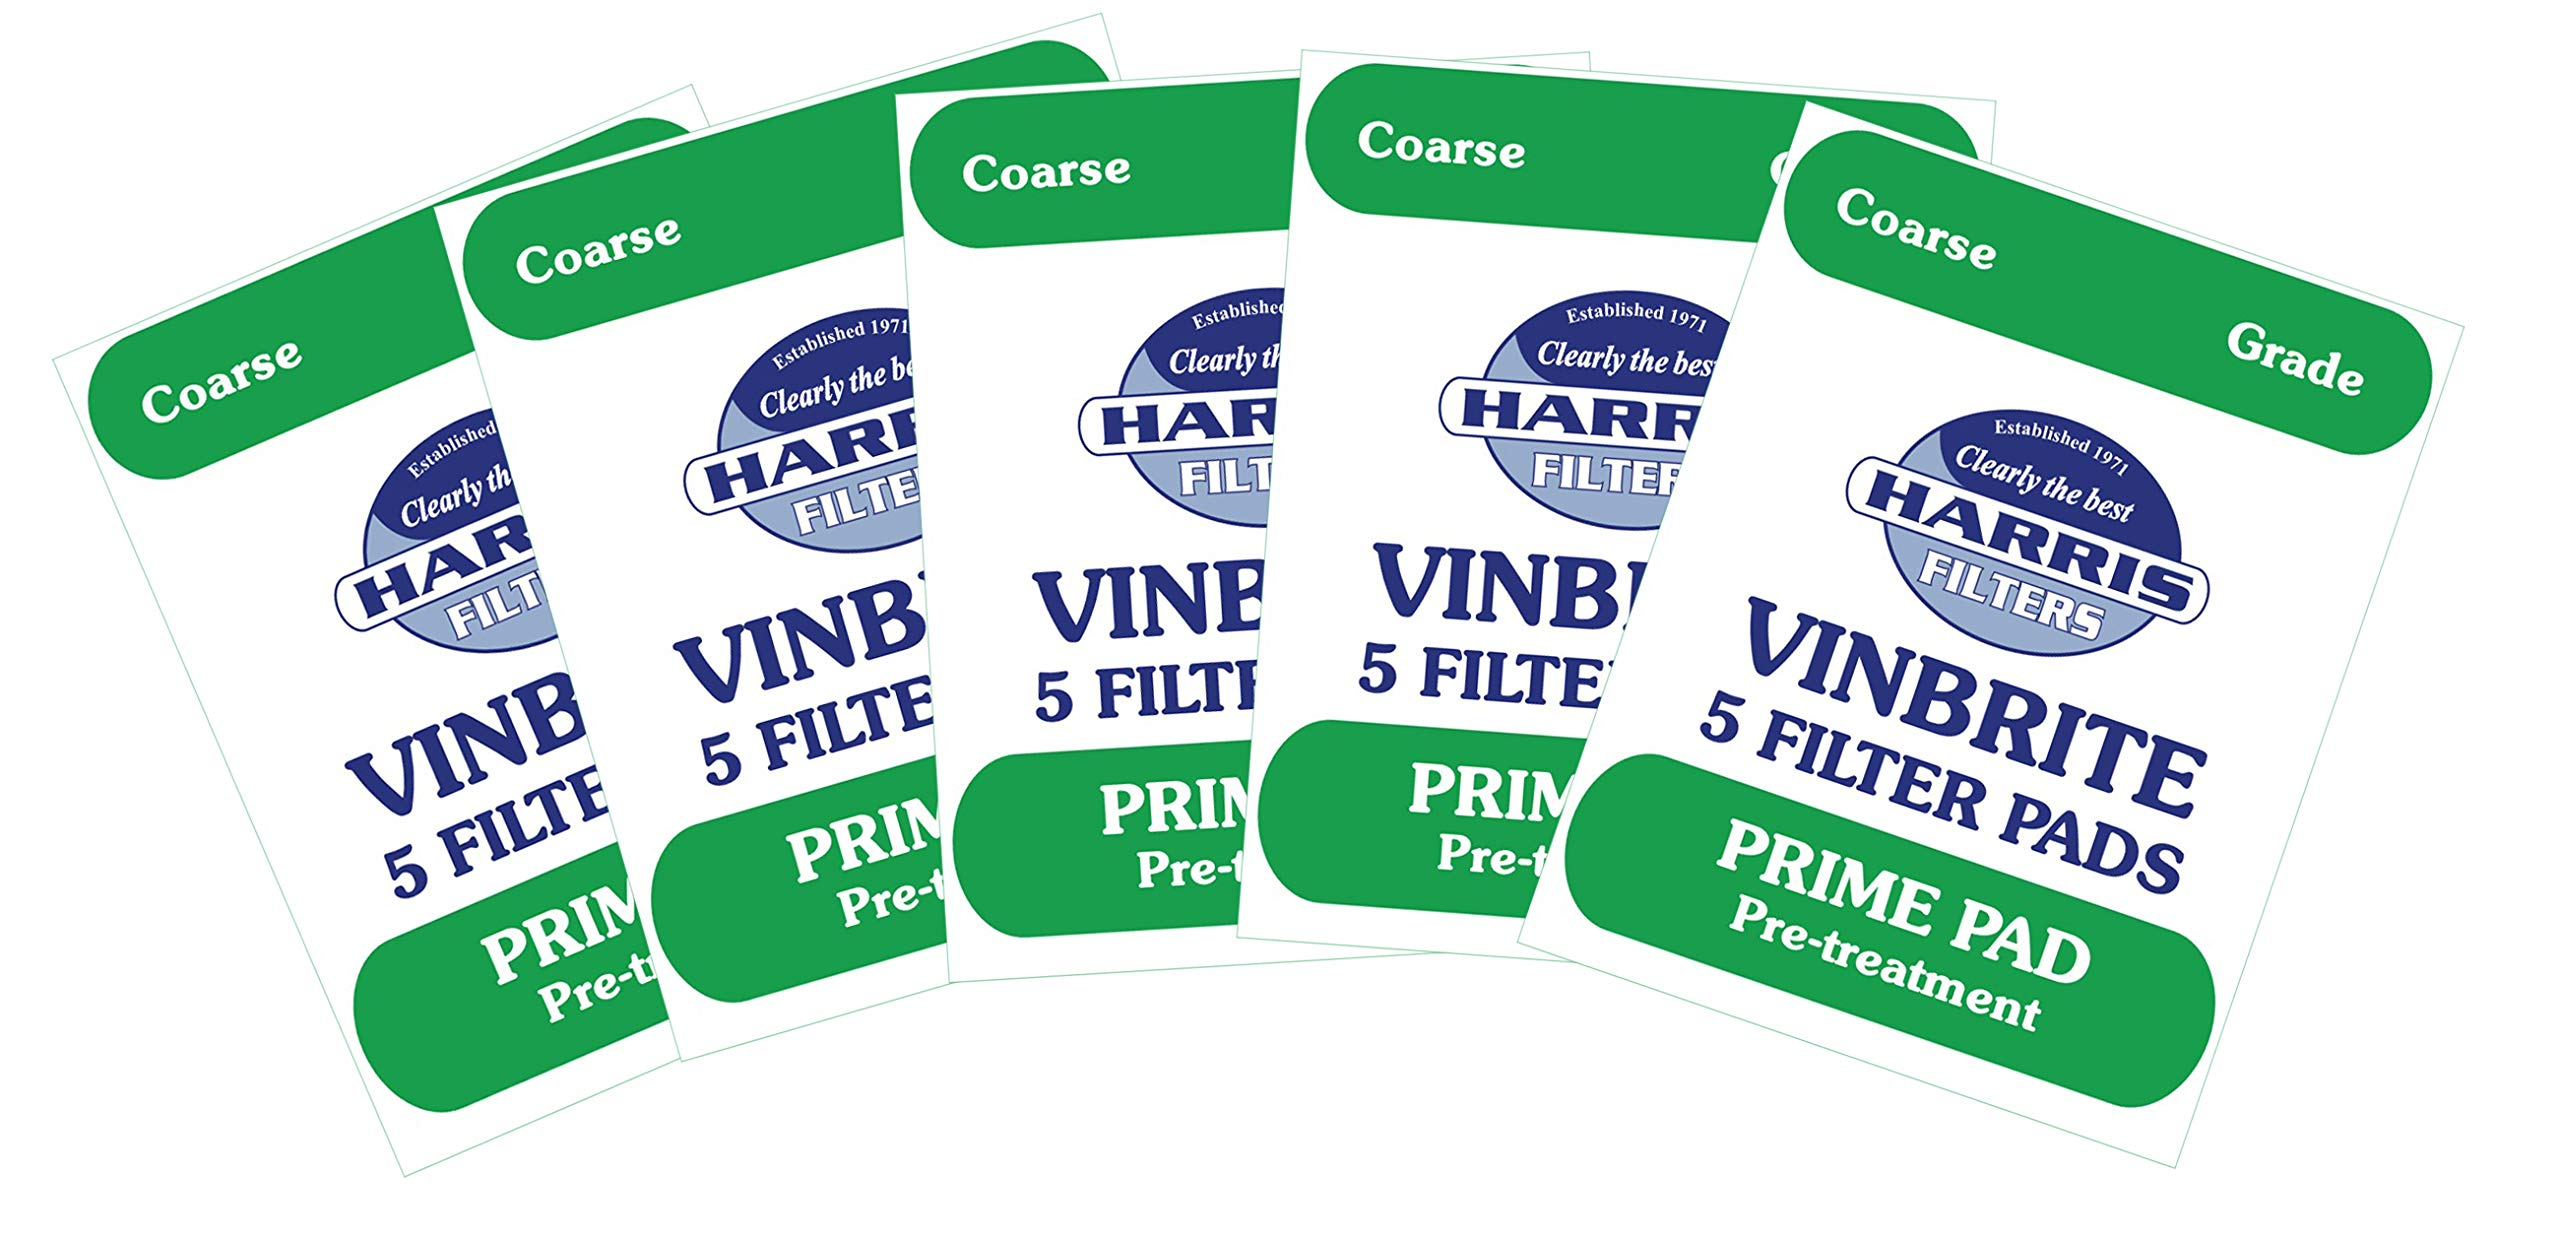 Harris Prime Pre-Filter Pads 5-pack Use with Harris Vinbrite MK3 Filter Kit by Harris by Harris Filters